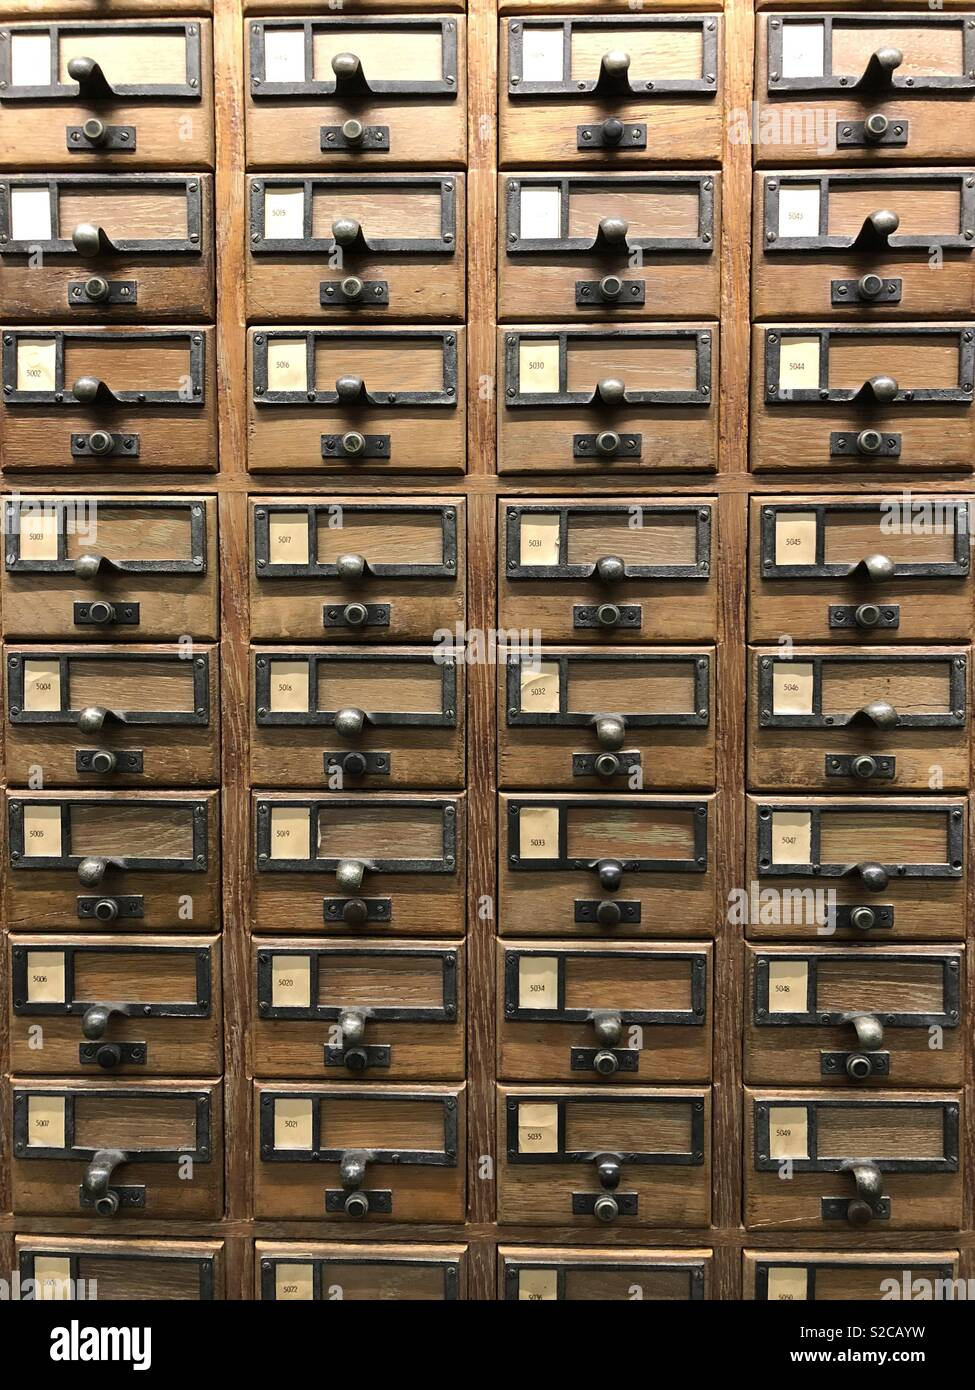 Drawers of library reference cards - Stock Image